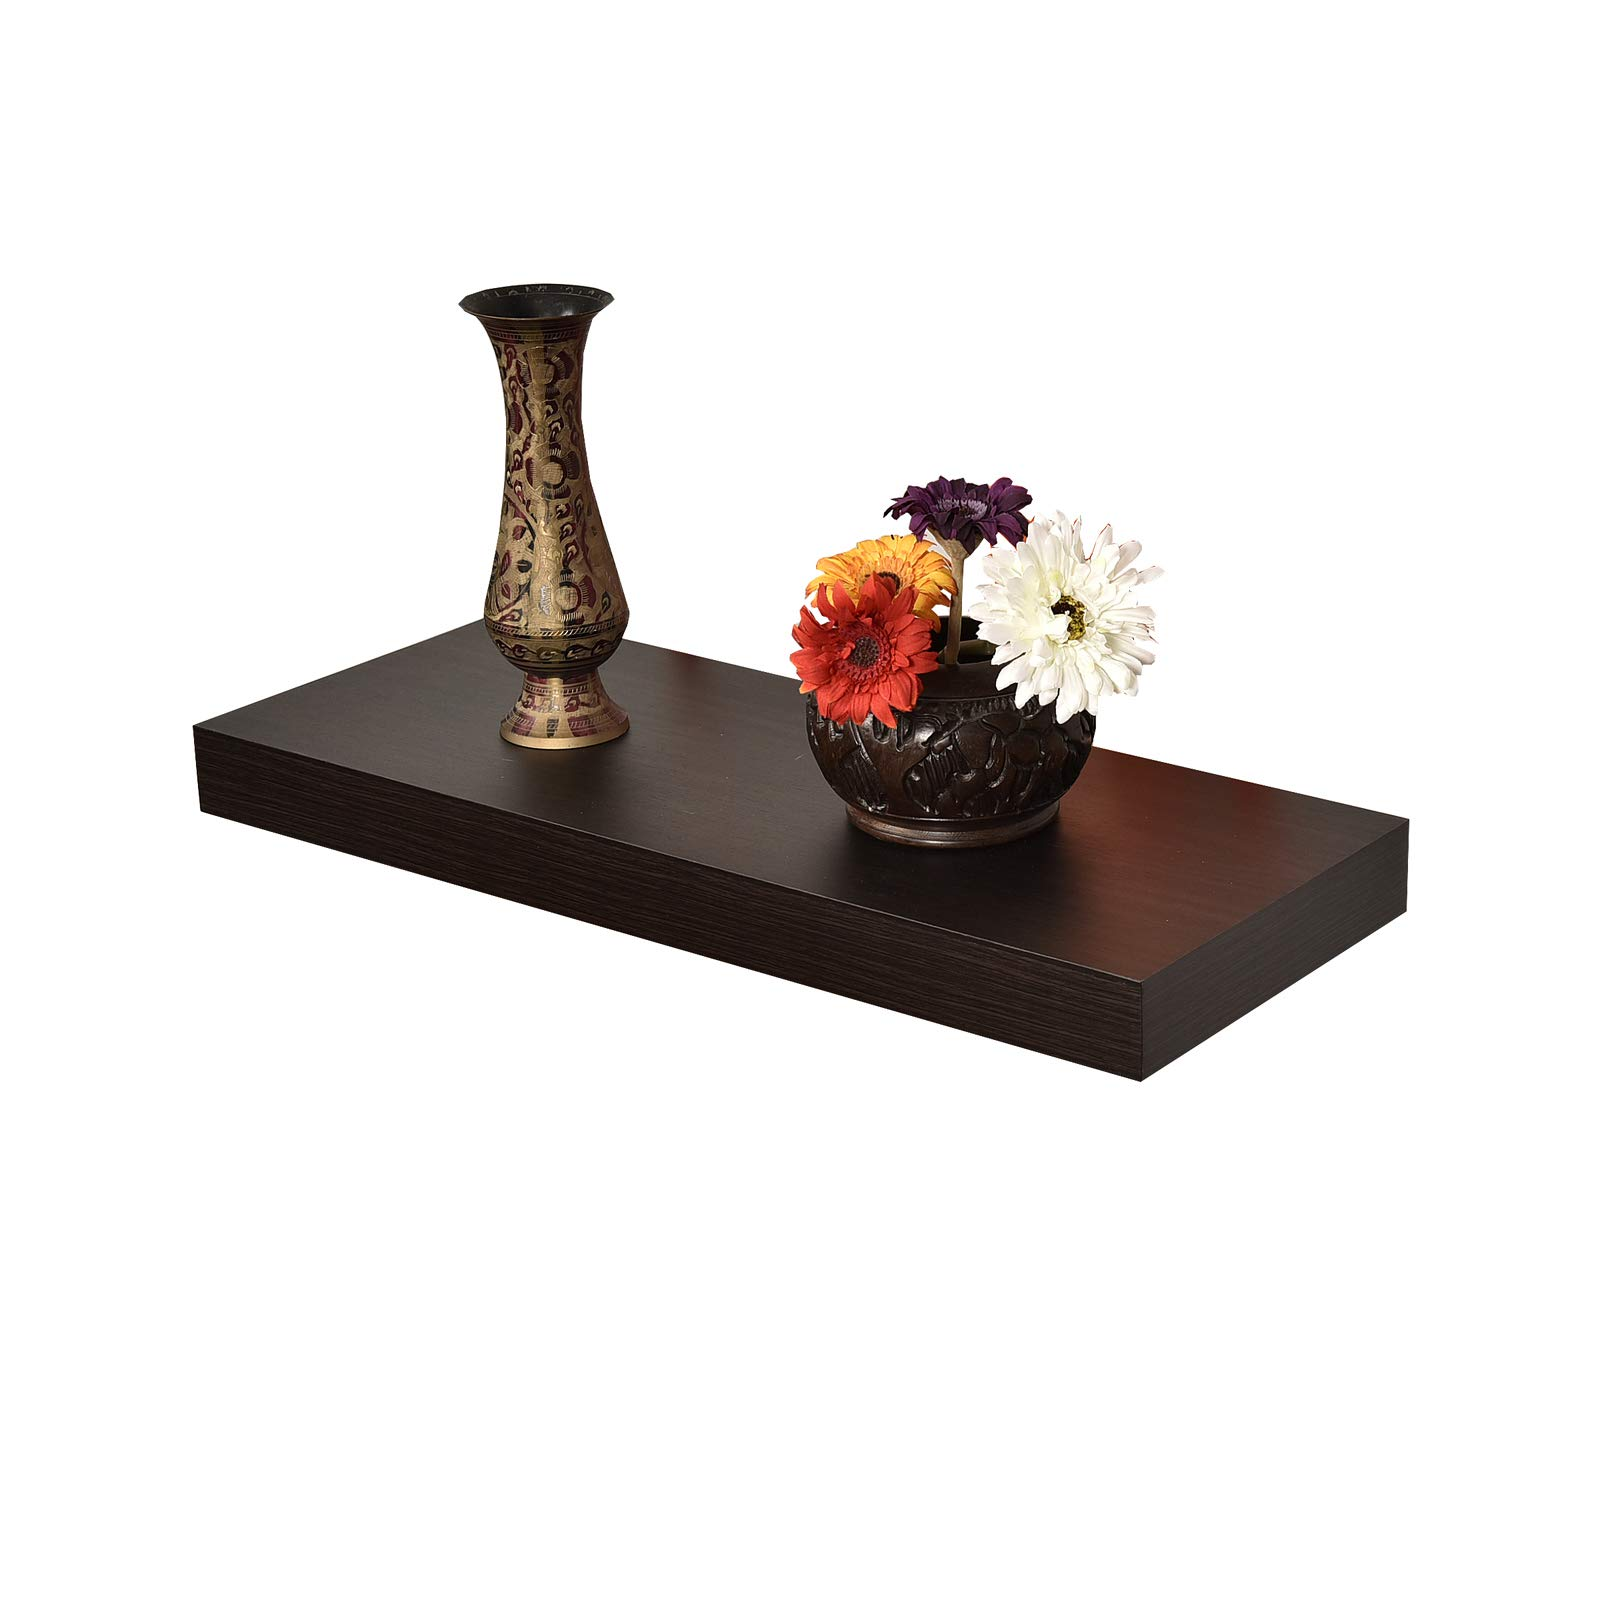 WELLAND 2'' Thickness Mission Floating Wall Shelf,approx 24-inch Length, Espresso